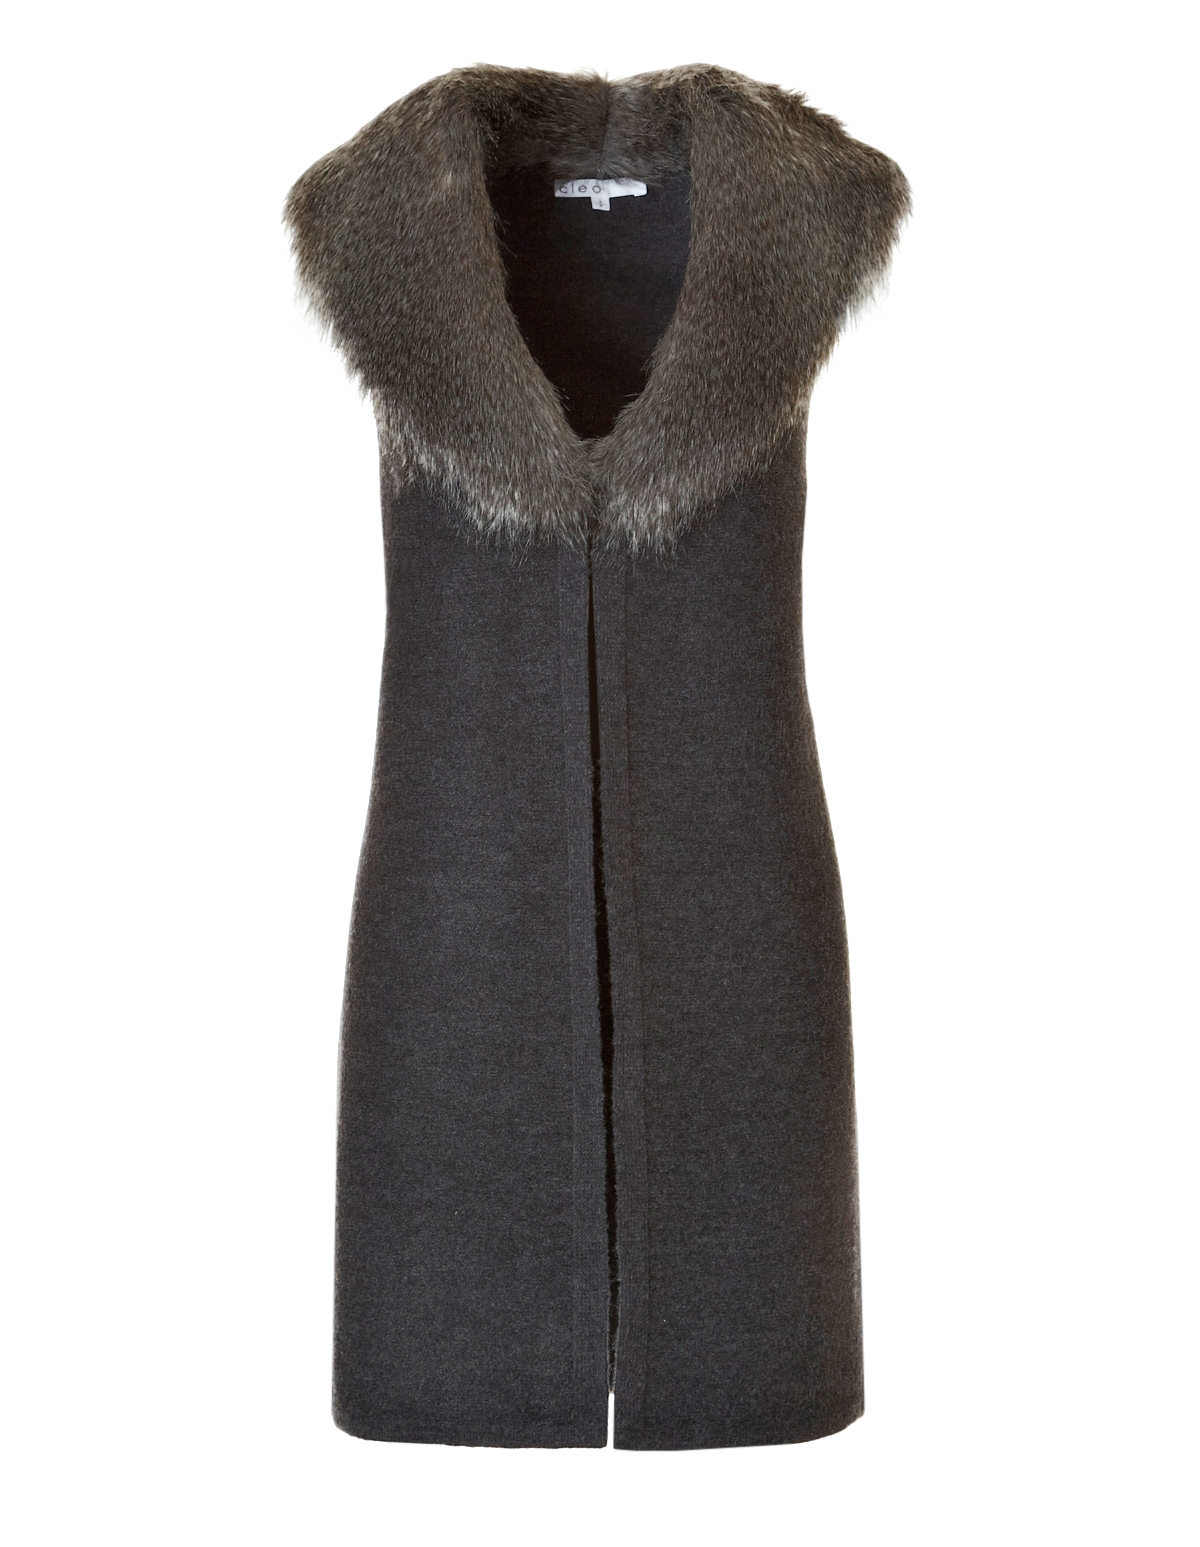 A prime webstore that specialized in fur online sale more than 10 years. Owning fur factory, own brand, own lables, manufacture furs by itself. Releasing the latest trendy fur styles every day, every week. Having the widest range of real fur collections, a variety of fur coats and accessories on sale. Serving customers, shipping furs worldwidely.